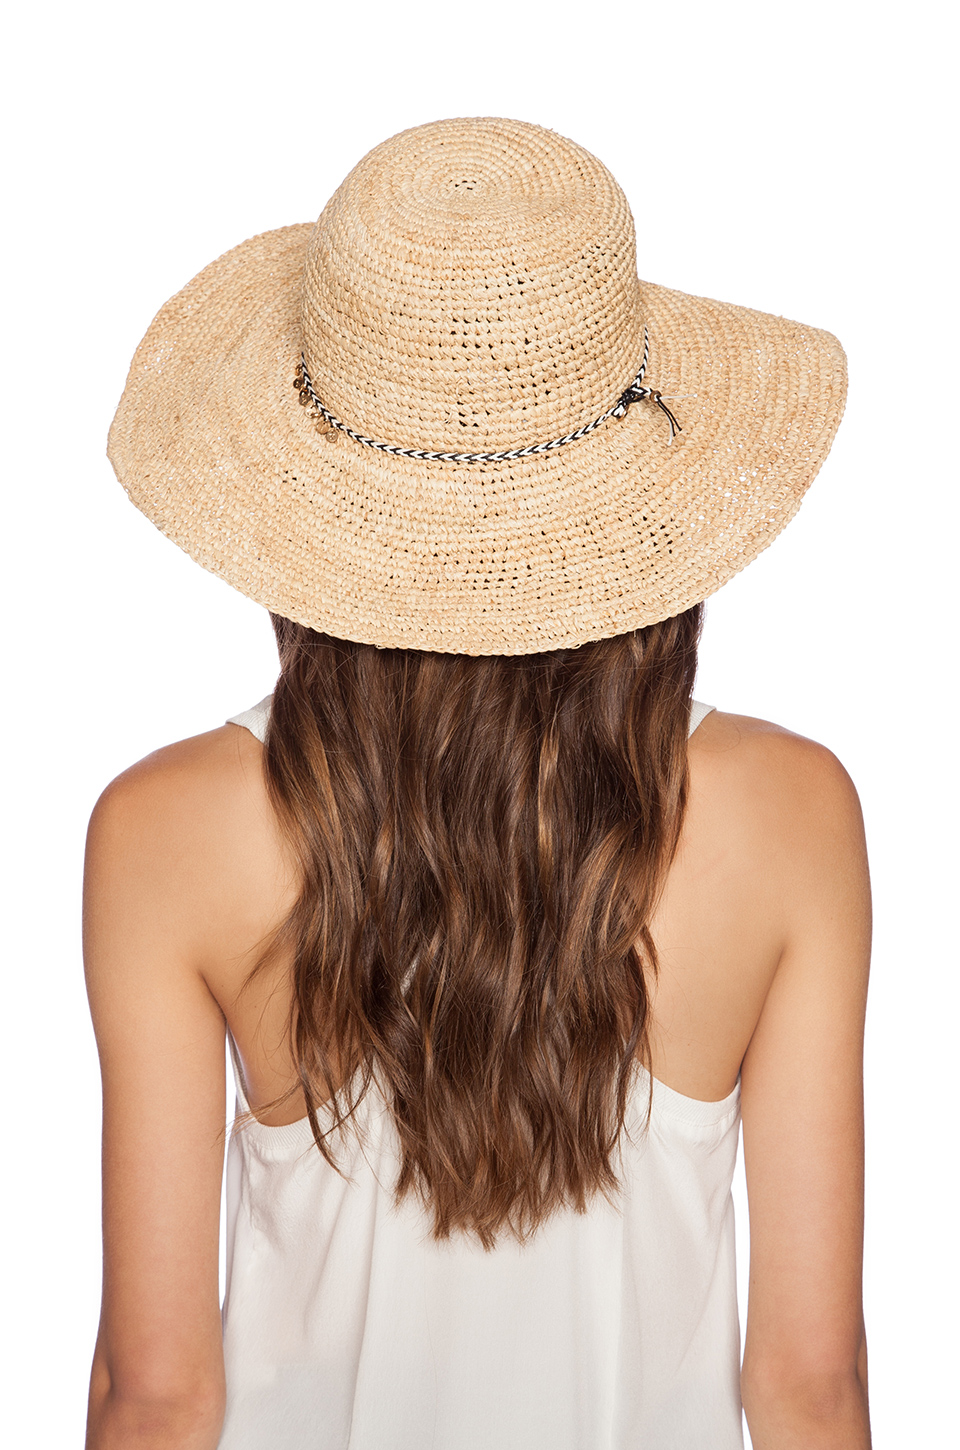 Chapeau jetset from revolveclothing.com